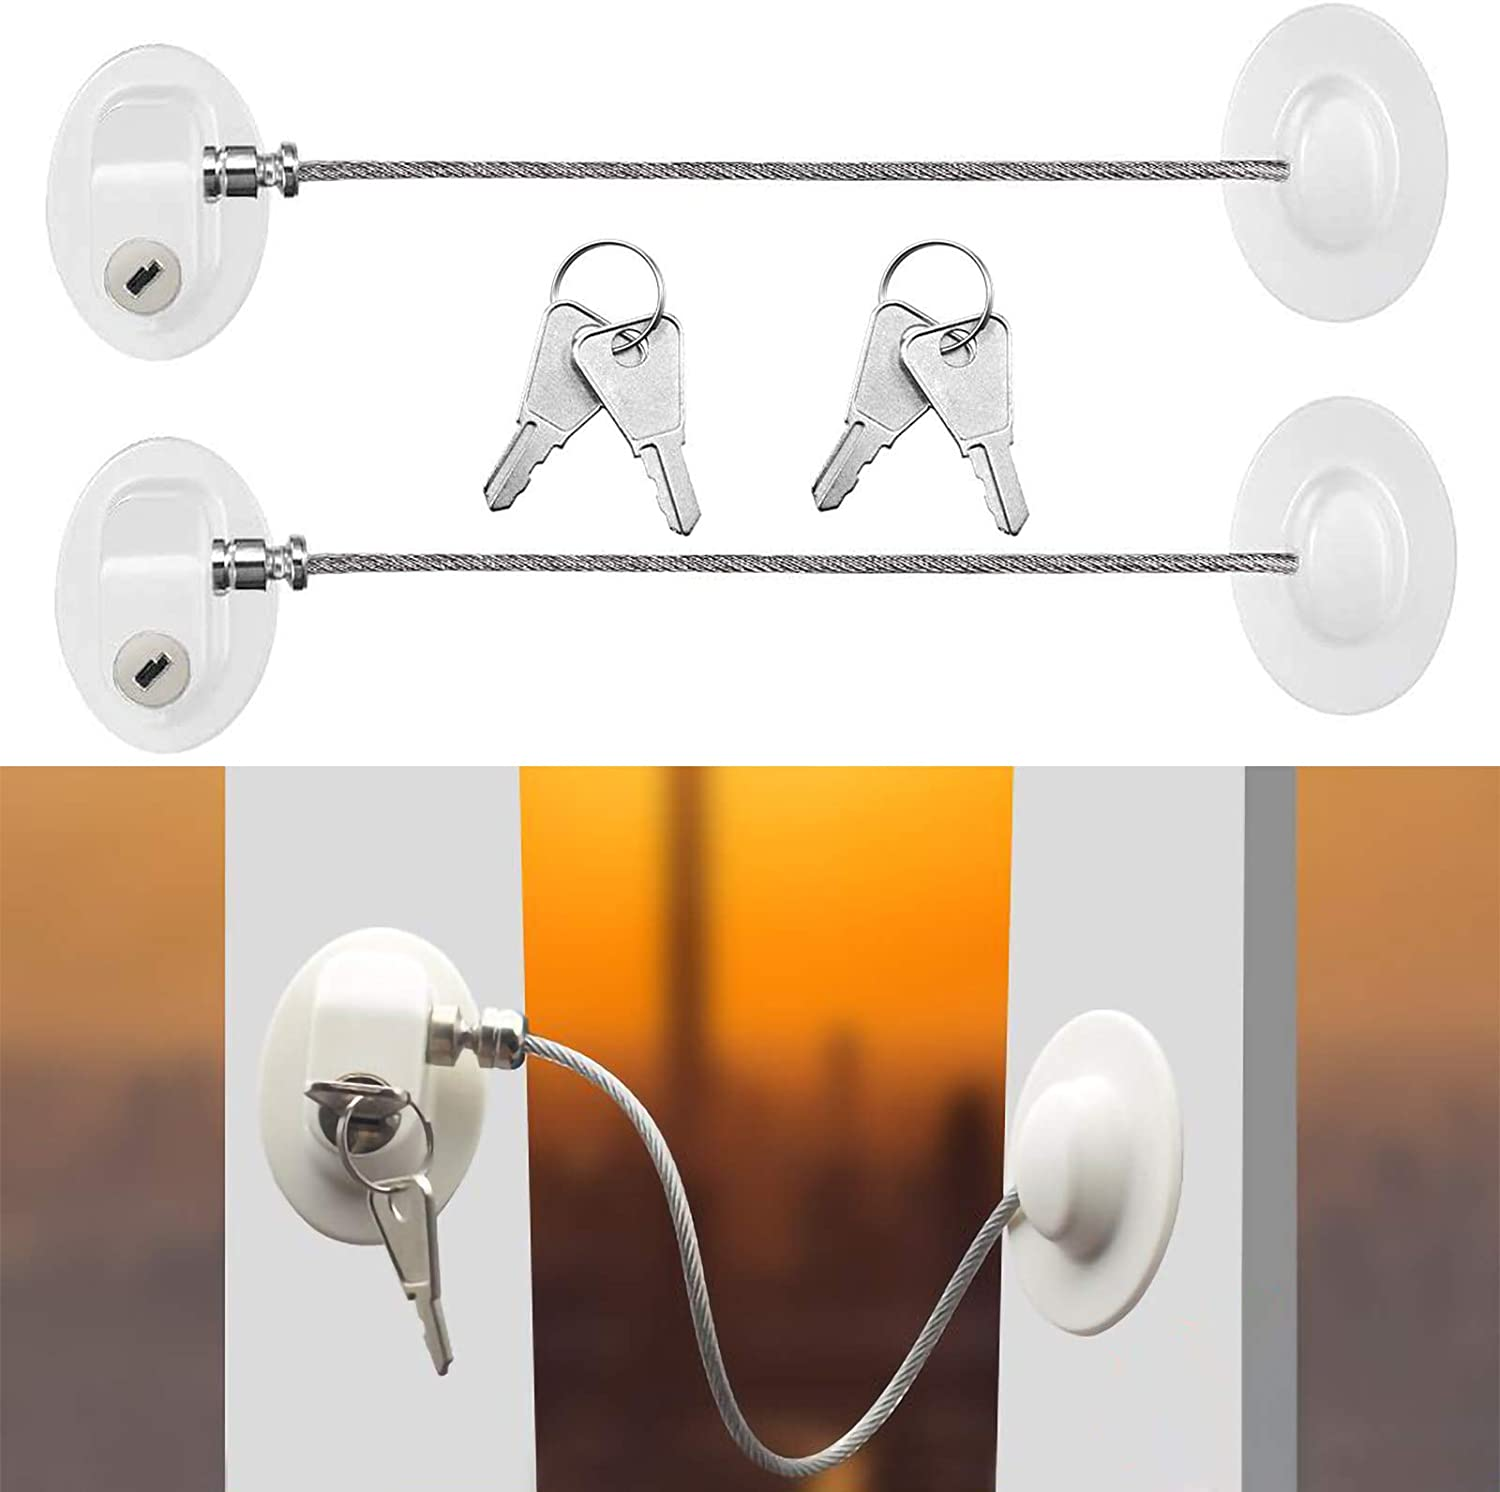 Cyleibe Window Door Restrictor Security Baby Challenge the lowest price of Japan Child Safety Lock Max 69% OFF